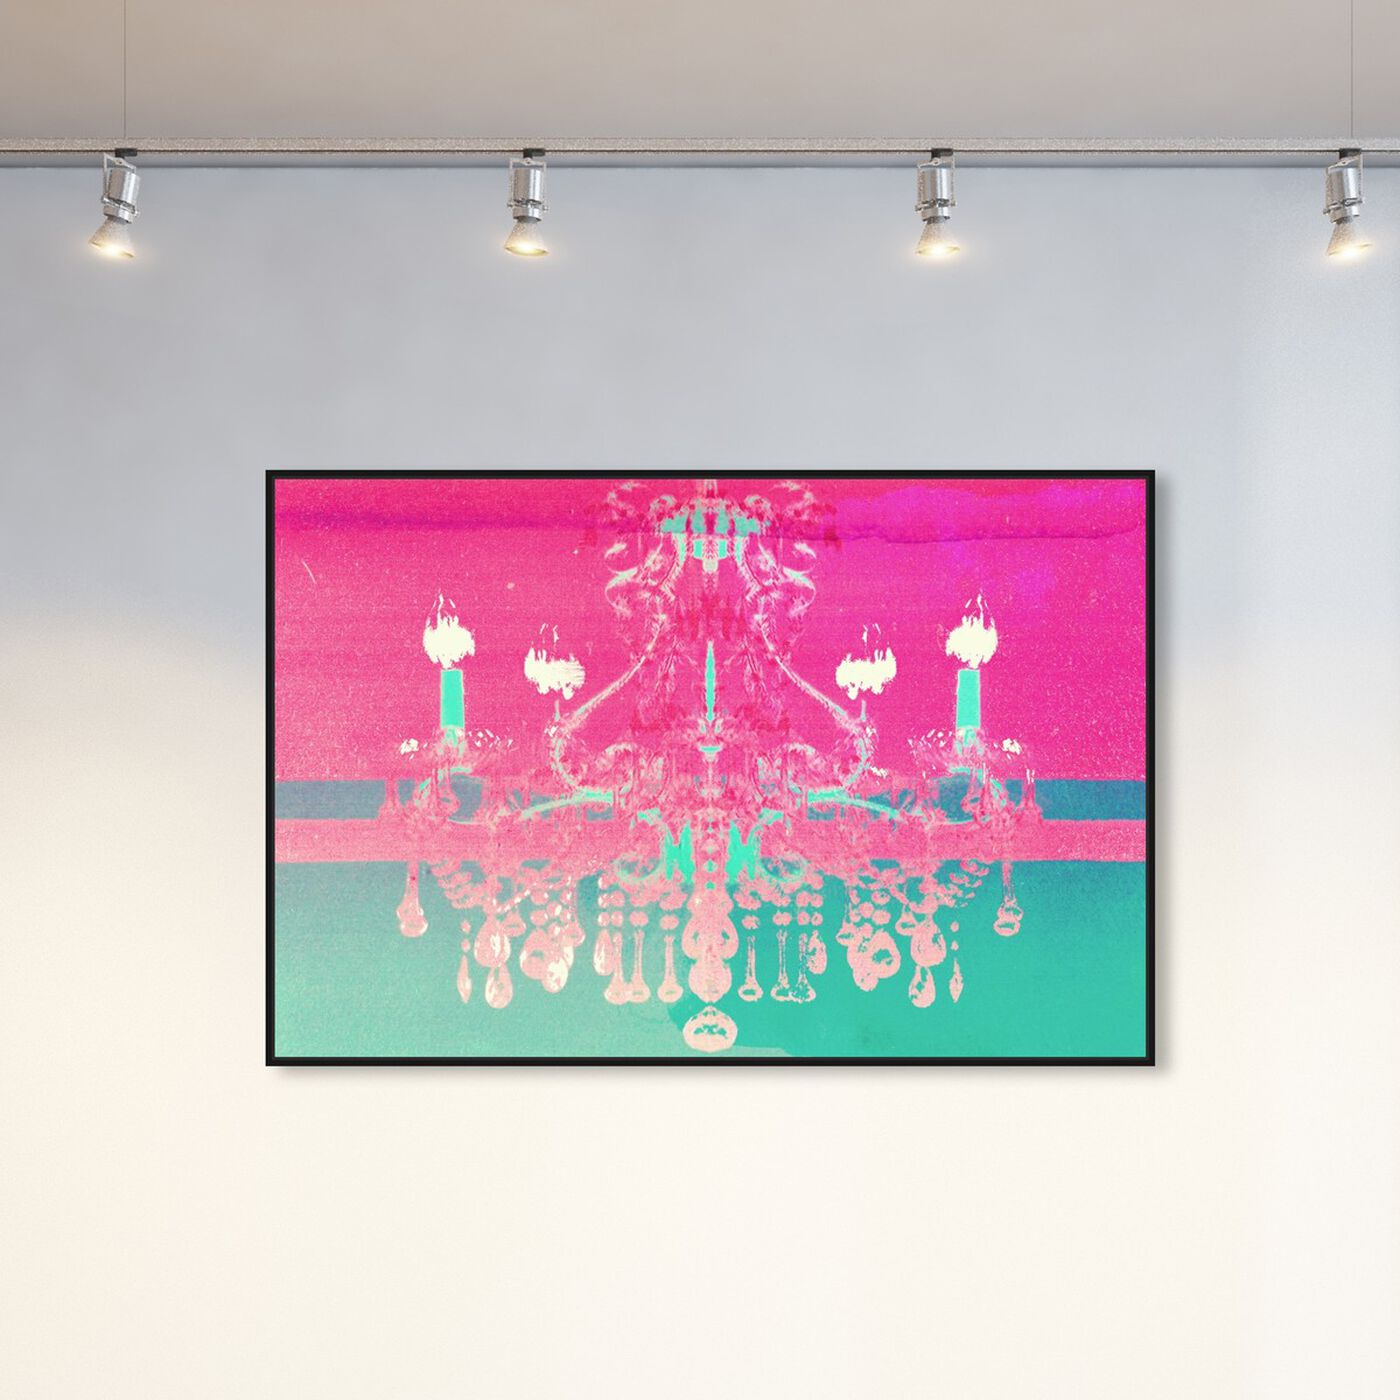 Hanging view of Adagio for Strings featuring fashion and glam and chandeliers art.